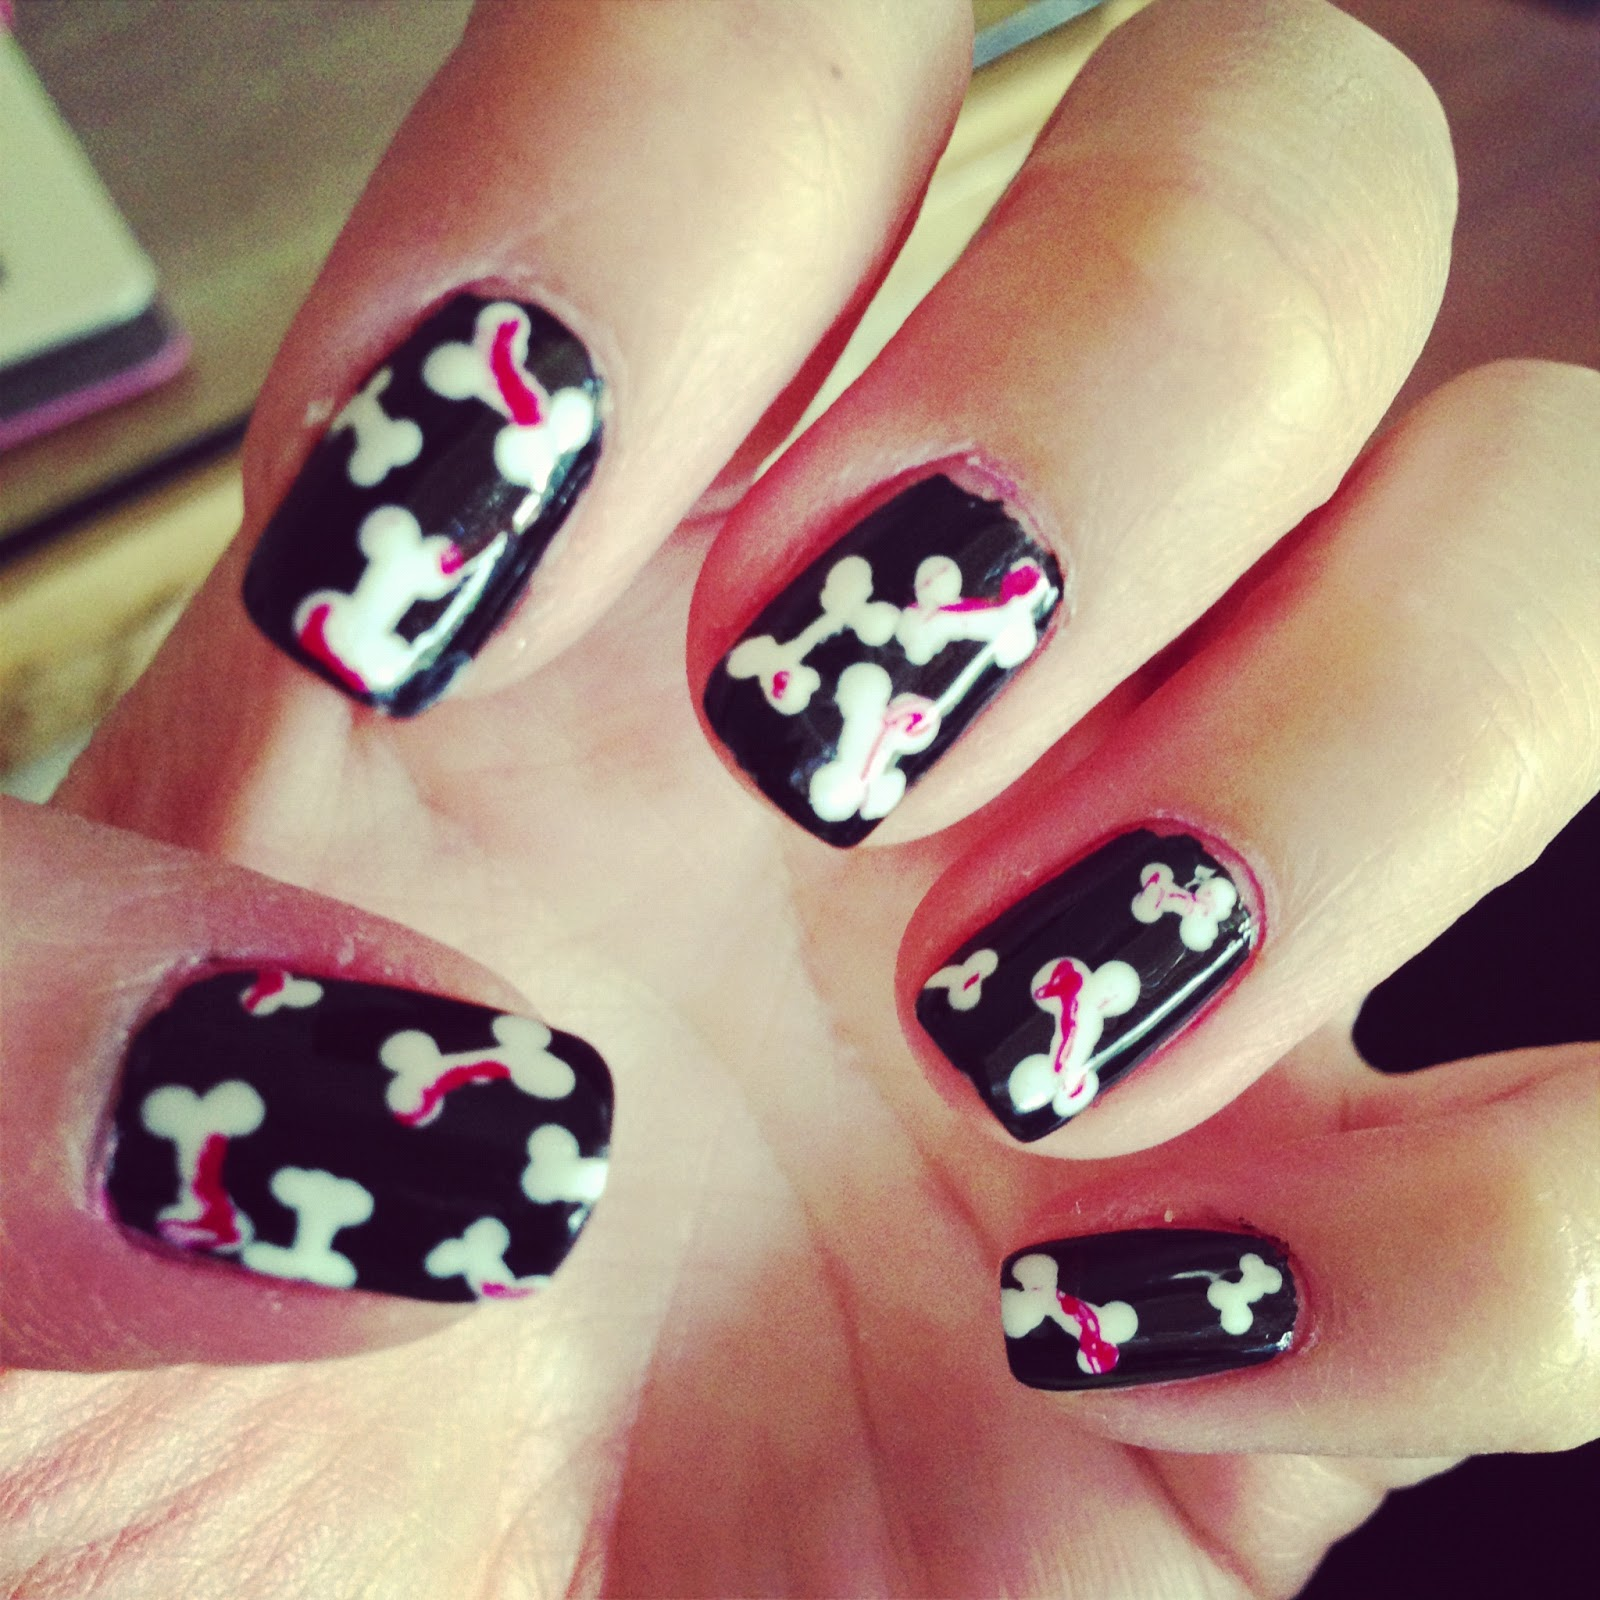 Nail Colors Halloween: Panda Loves Polish: Halloween Nails- Bones And Haunted House